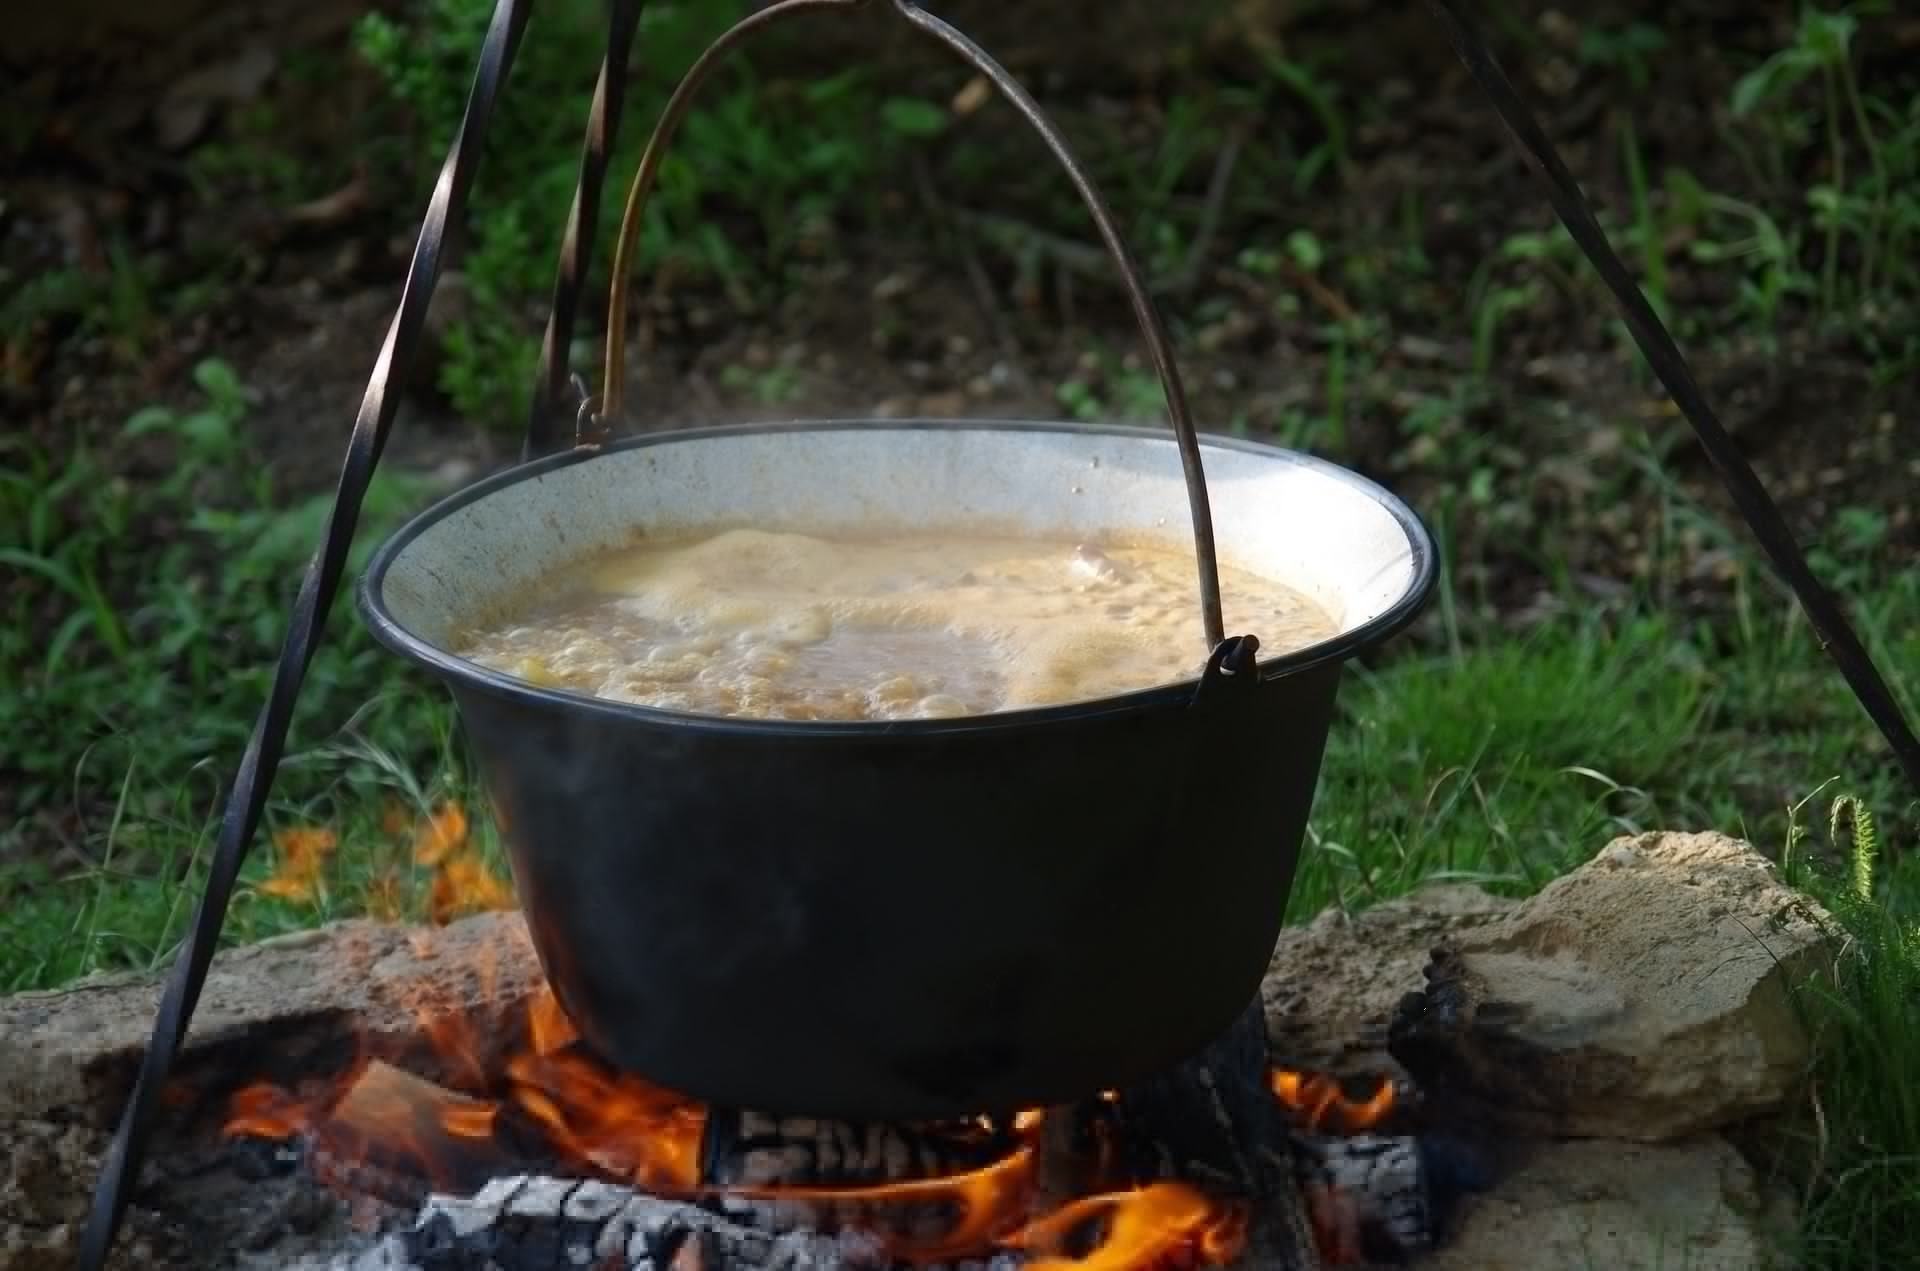 Irish Medieval Iron Age food - cooking pottage stew in a cauldron over a fire